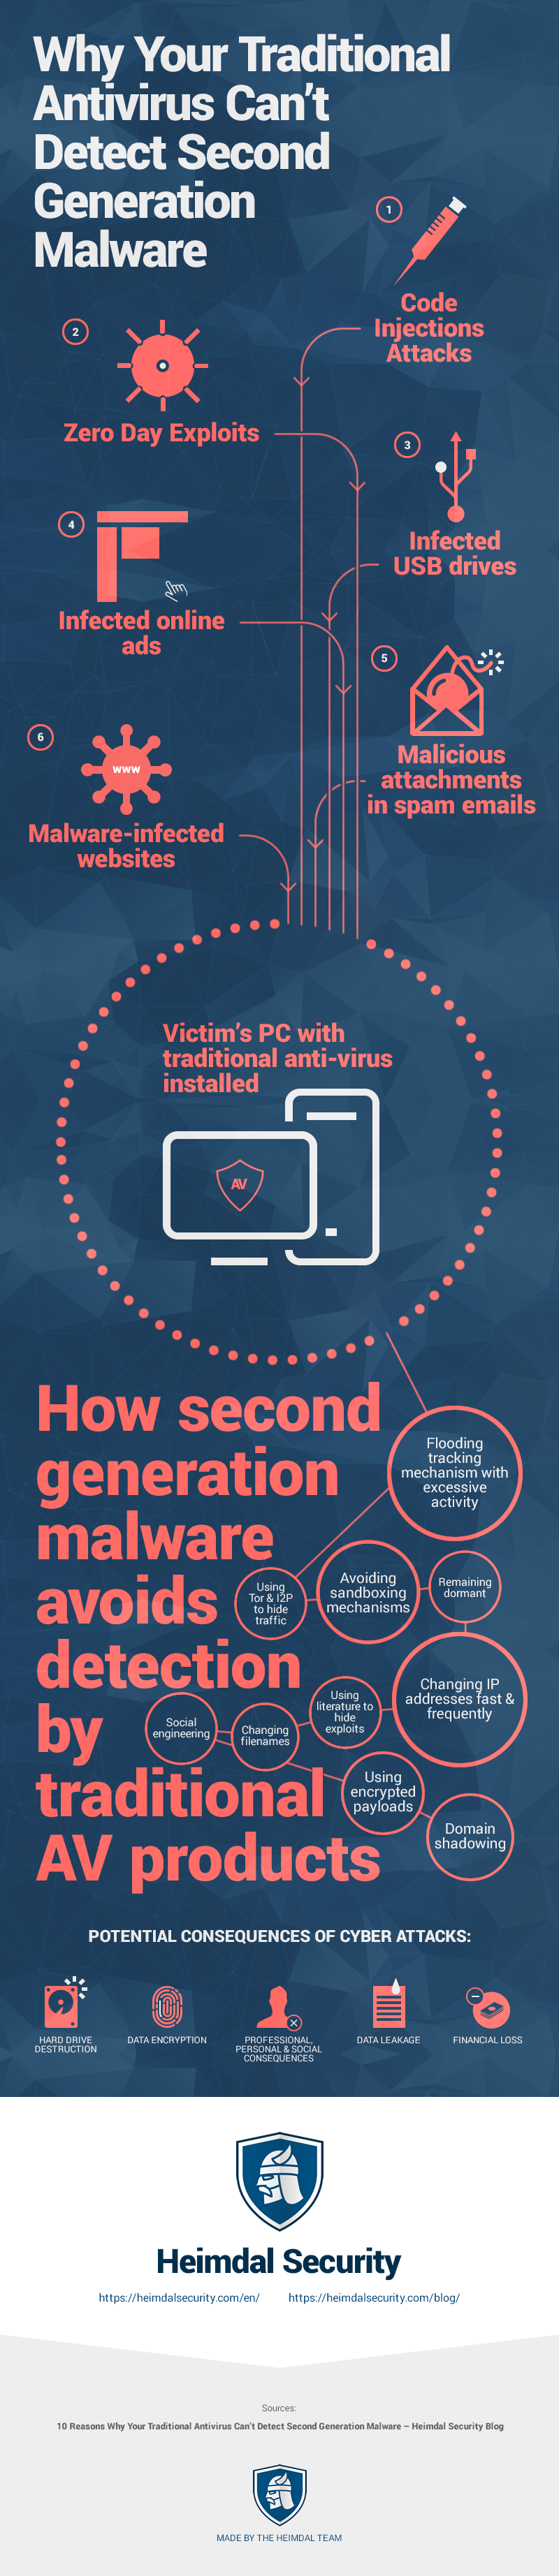 Why Your Traditional Antivirus Can't Detect Second Generation Malware